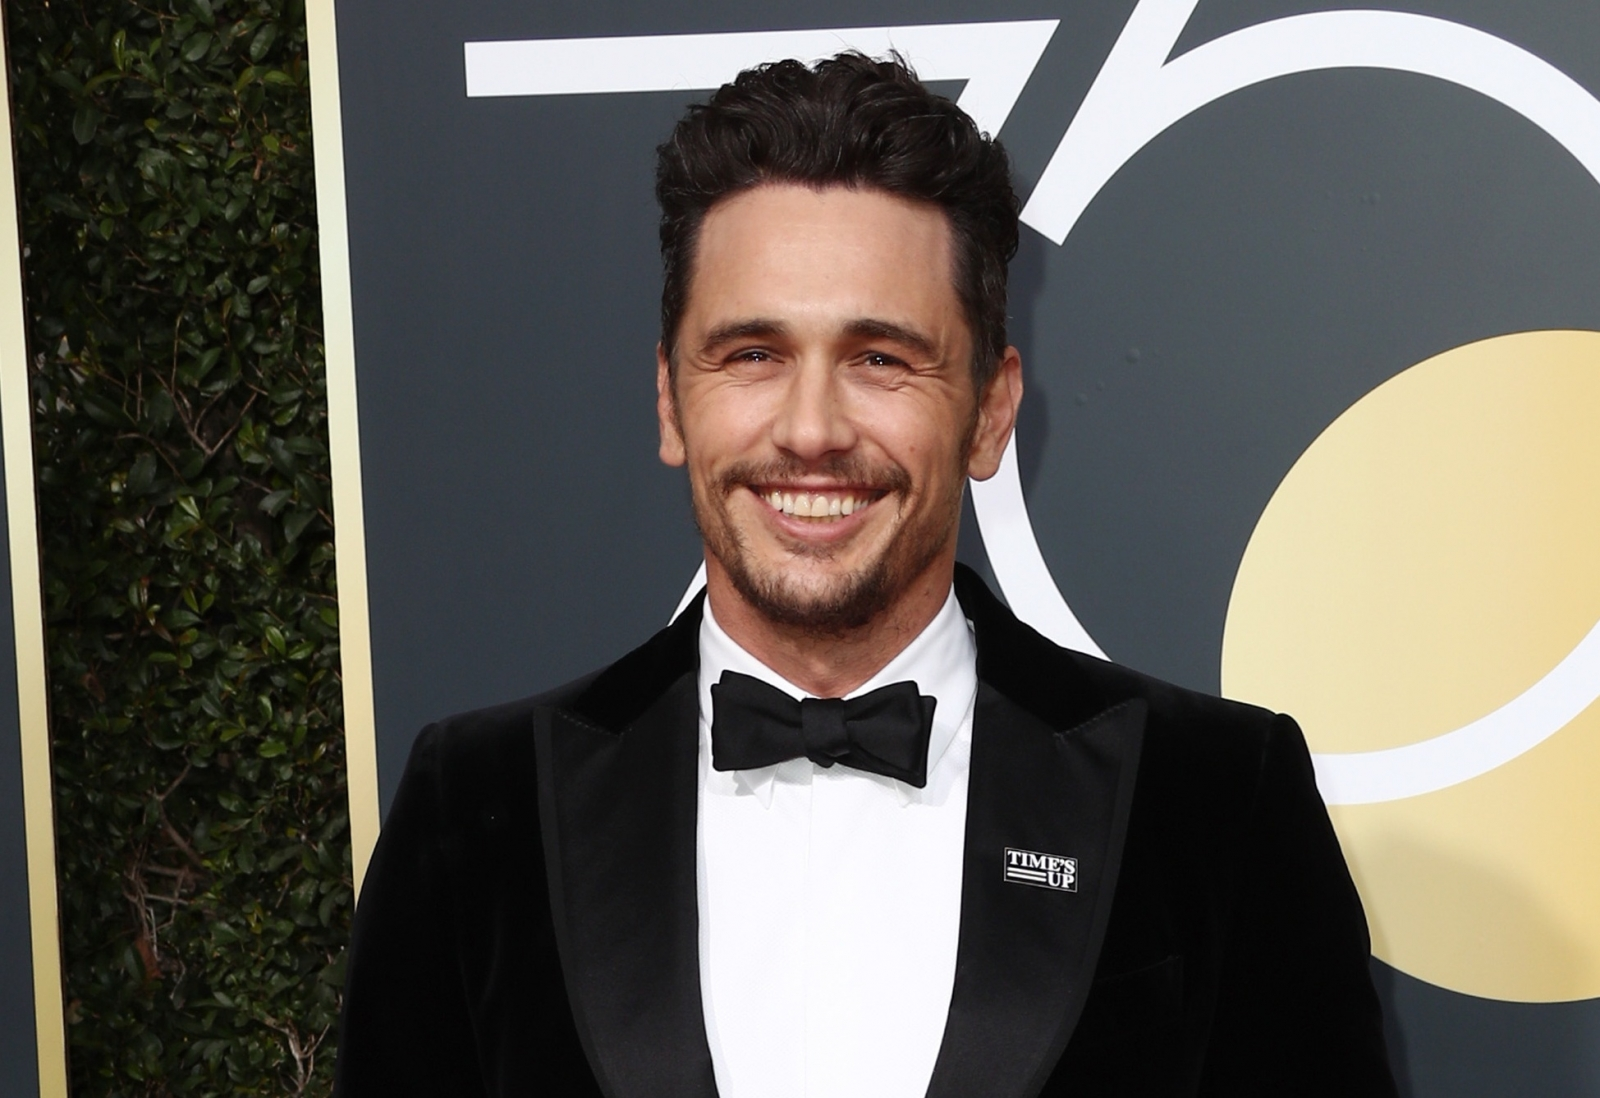 Five Women Accuse James Franco of Sexually Exploitative Behavior